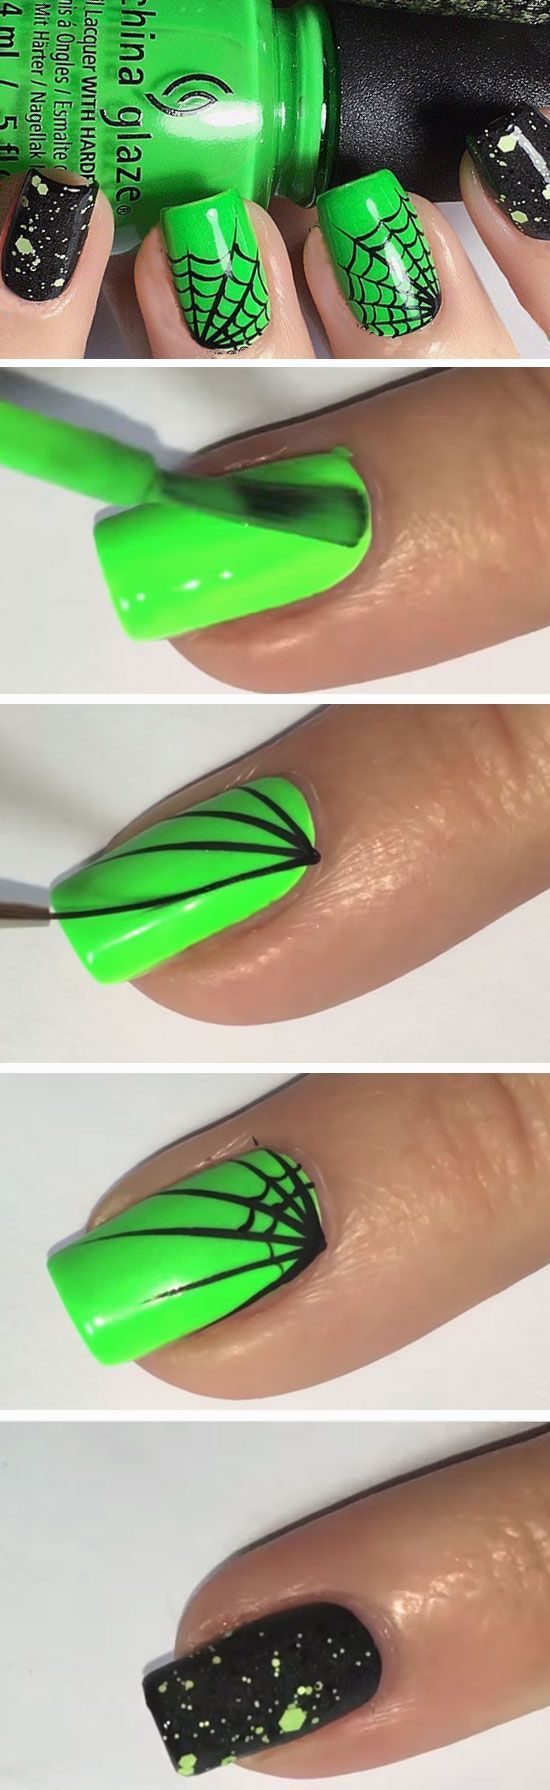 26 Easy Halloween Nail Art Ideas for Teens | Diseños de uñas ...